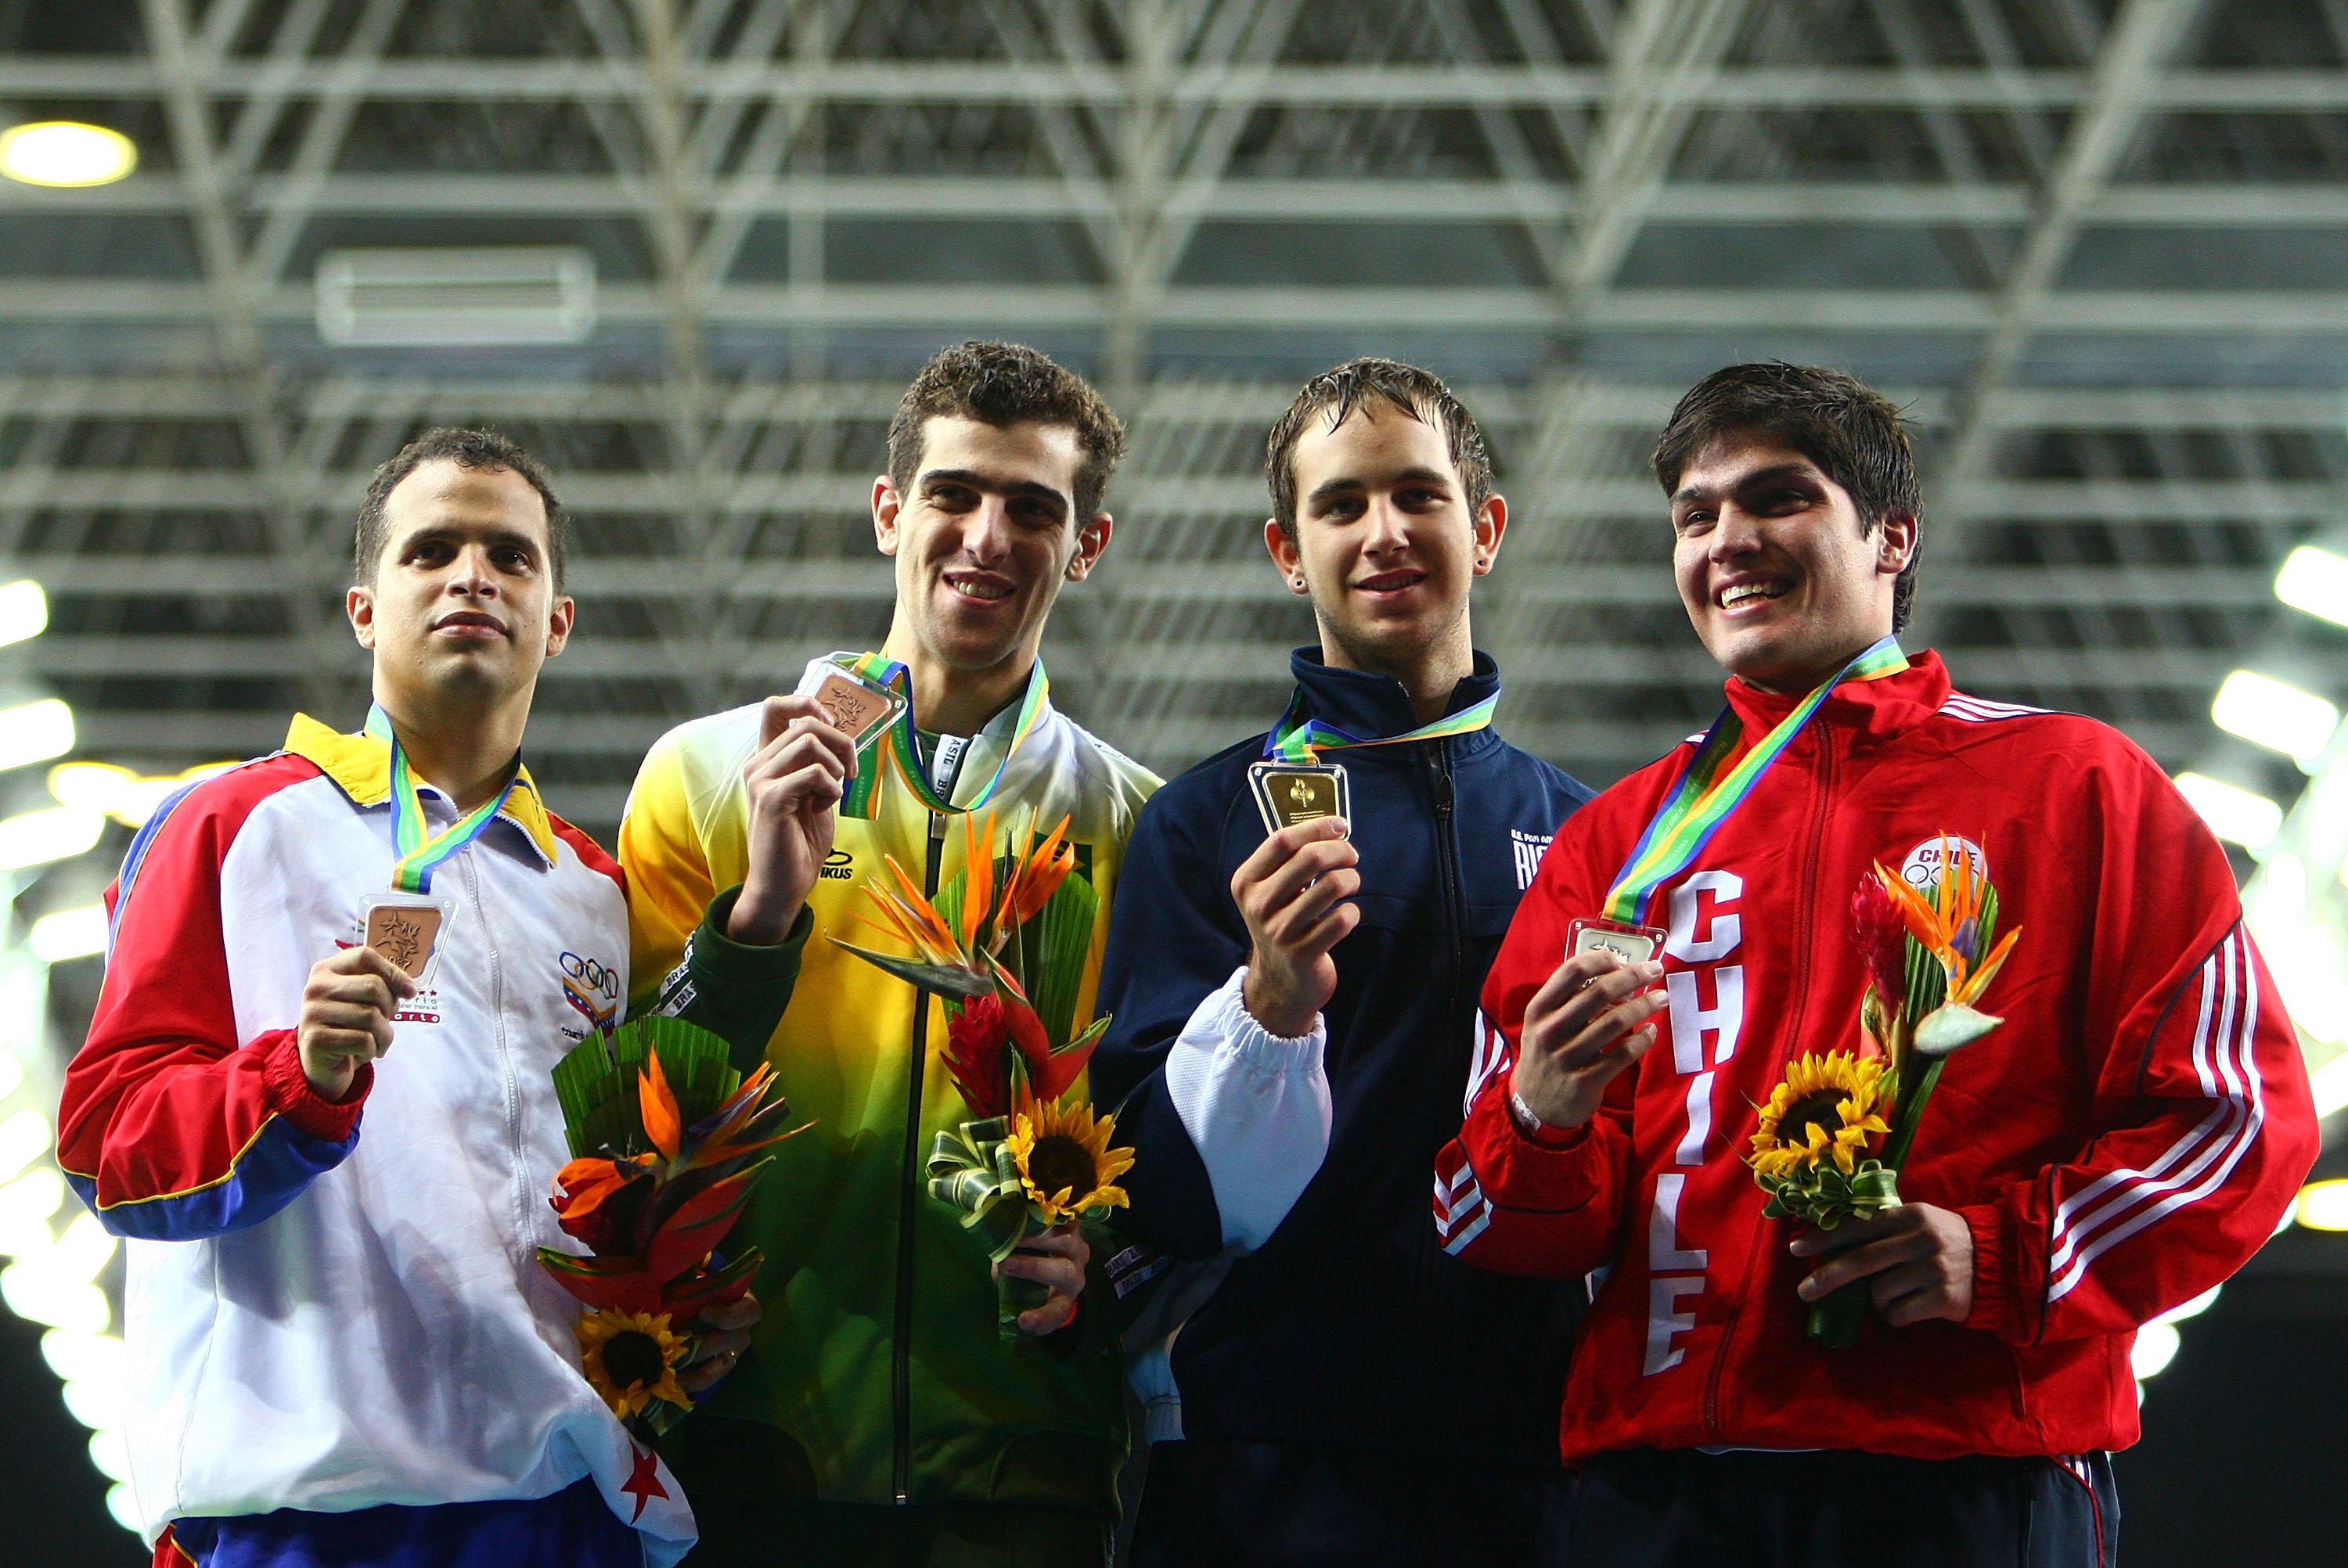 (L-R) Carlos Rodriguez of Venezuela (bronze), Jodo Suoza of Brazil (bronze), Andras Horanyi of the United States of America (gold) and Felipe Alvear of Chile (silver) celebrate after the Men's Individual Foil final during the XV Pan American Games on July 14, 2007 at Copacabana Beach in Rio De Janeiro, Brazil.  (Photo by Donald Miralle/Getty Images)